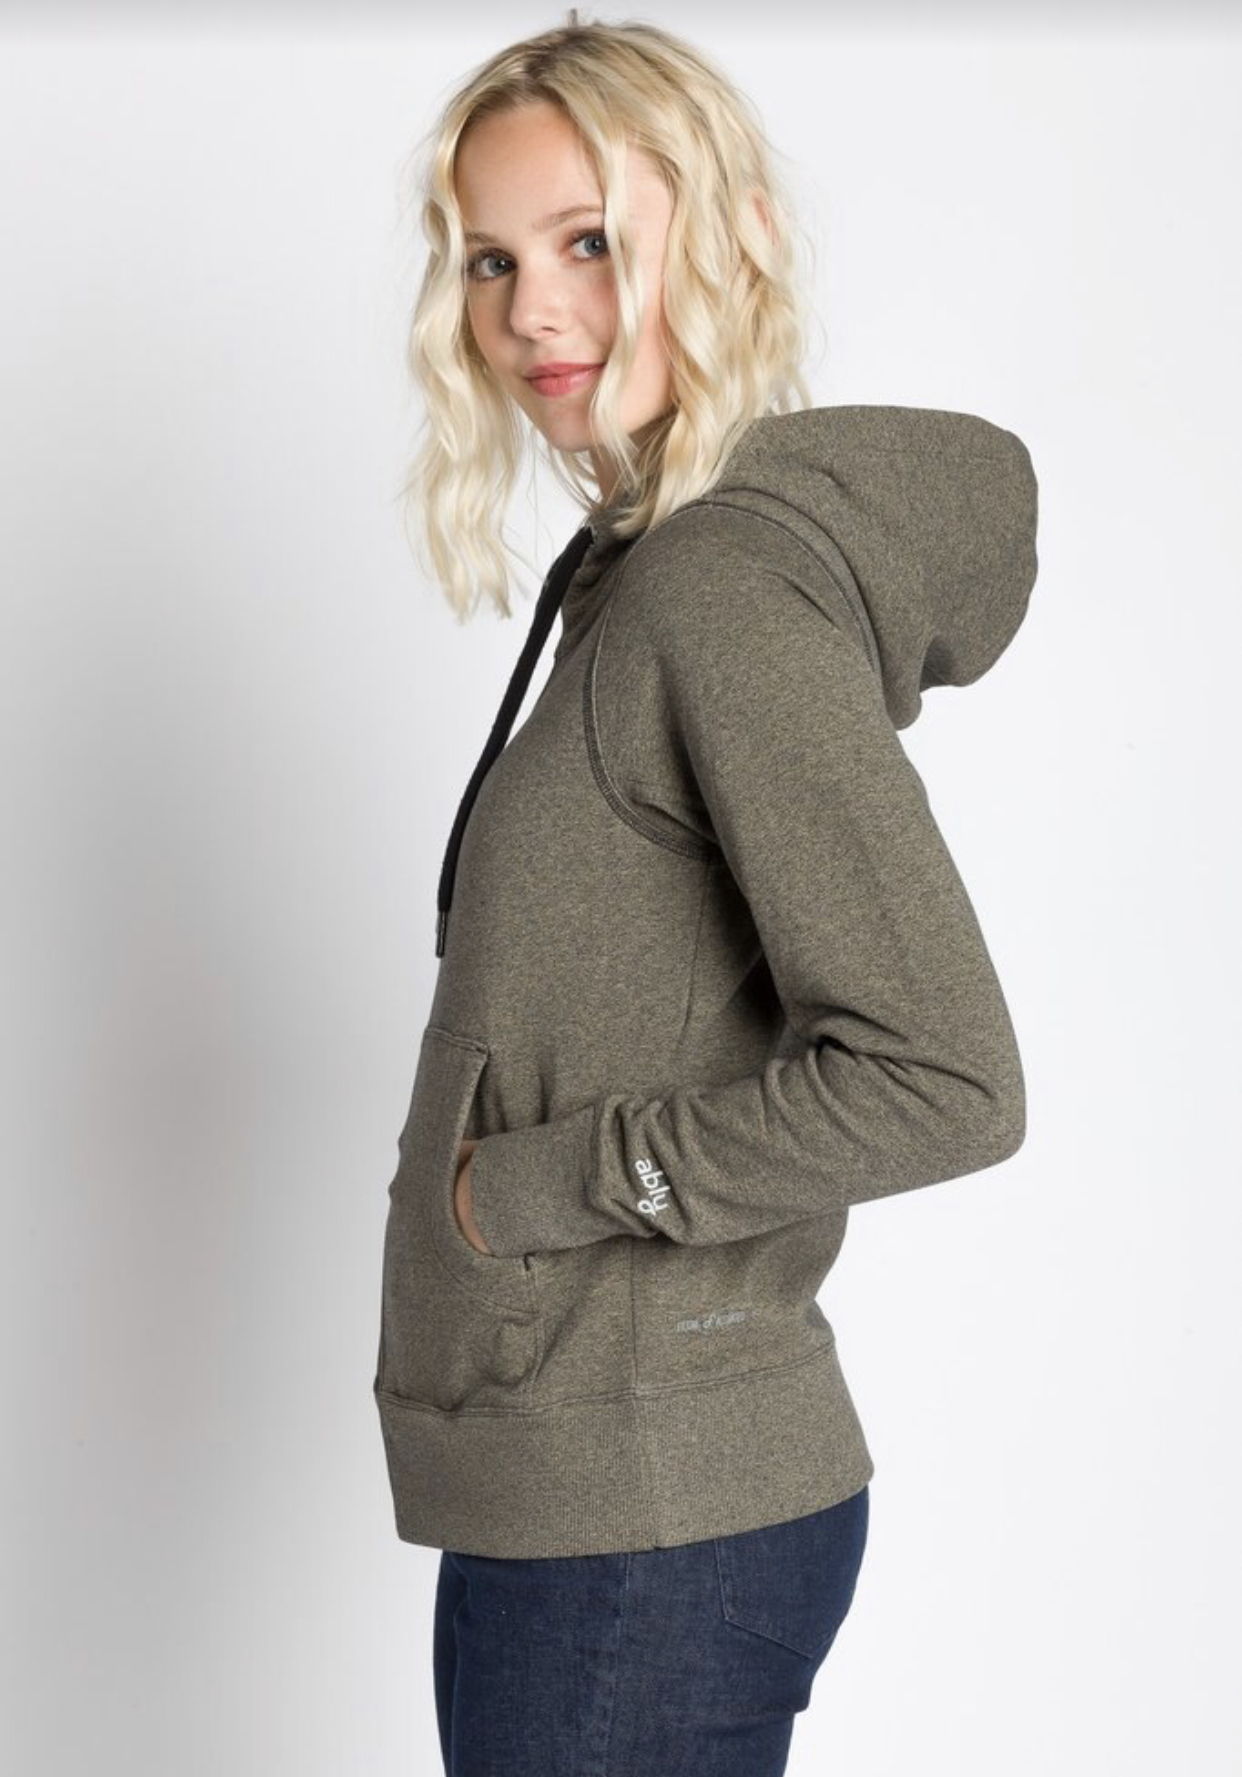 "<p>This full zip hoodie from Ably Apparel is{&nbsp;}water, stain, and odor-resistant.{&nbsp;} Perfect for lounging at home or taking a stroll around the neighborhood. Ably has tons of comfy goodies for both her and him.{&nbsp;}<a  href=""https://ablyapparel.com/products/apphia-full-zip-hooded-jacket?variant=32157284991047"" target=""_blank"" title=""https://ablyapparel.com/products/apphia-full-zip-hooded-jacket?variant=32157284991047"">Shop it</a>{&nbsp;}online or Ably just launched a pop-up location from now till October 18th in Edmonds, the address is 186 Sunset Ave, Edmonds, WA 98020.{&nbsp;} Proceeds from sales at the pop-up will be donated to fund the construction of the Edmonds Waterfront Center.{&nbsp;}</p><p>(Image:{&nbsp;} Ably Apparel){&nbsp;}</p>"